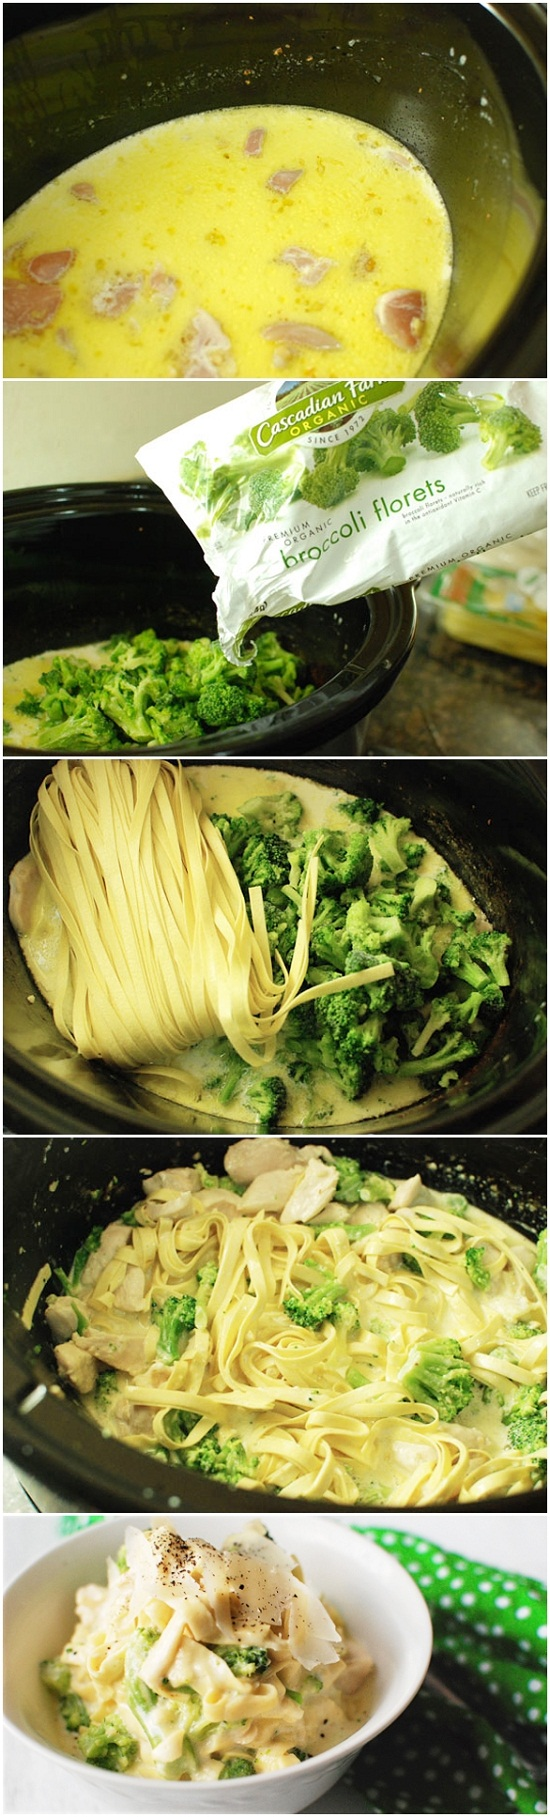 Slow-Cooker-Chicken-Fettuccine-Alfredo-Recipe